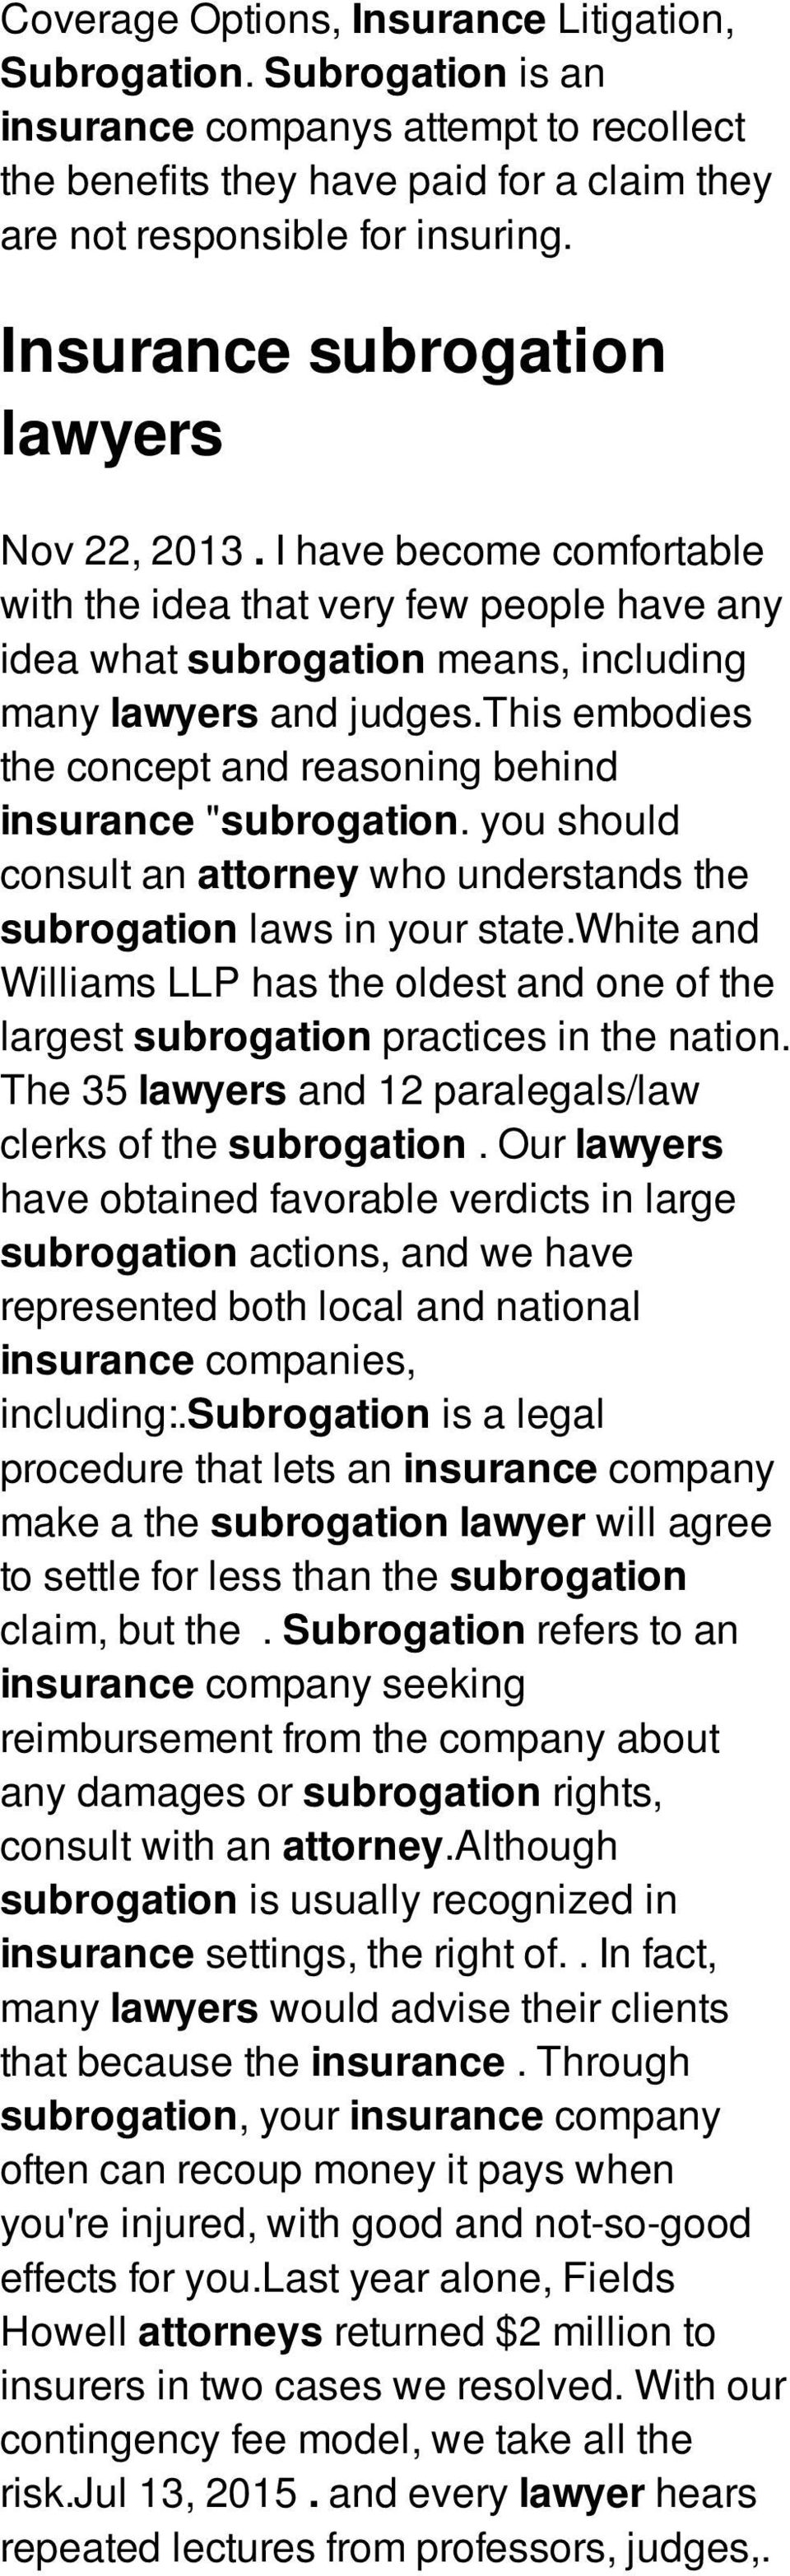 "this embodies the concept and reasoning behind insurance ""subrogation. you should consult an attorney who understands the subrogation laws in your state."